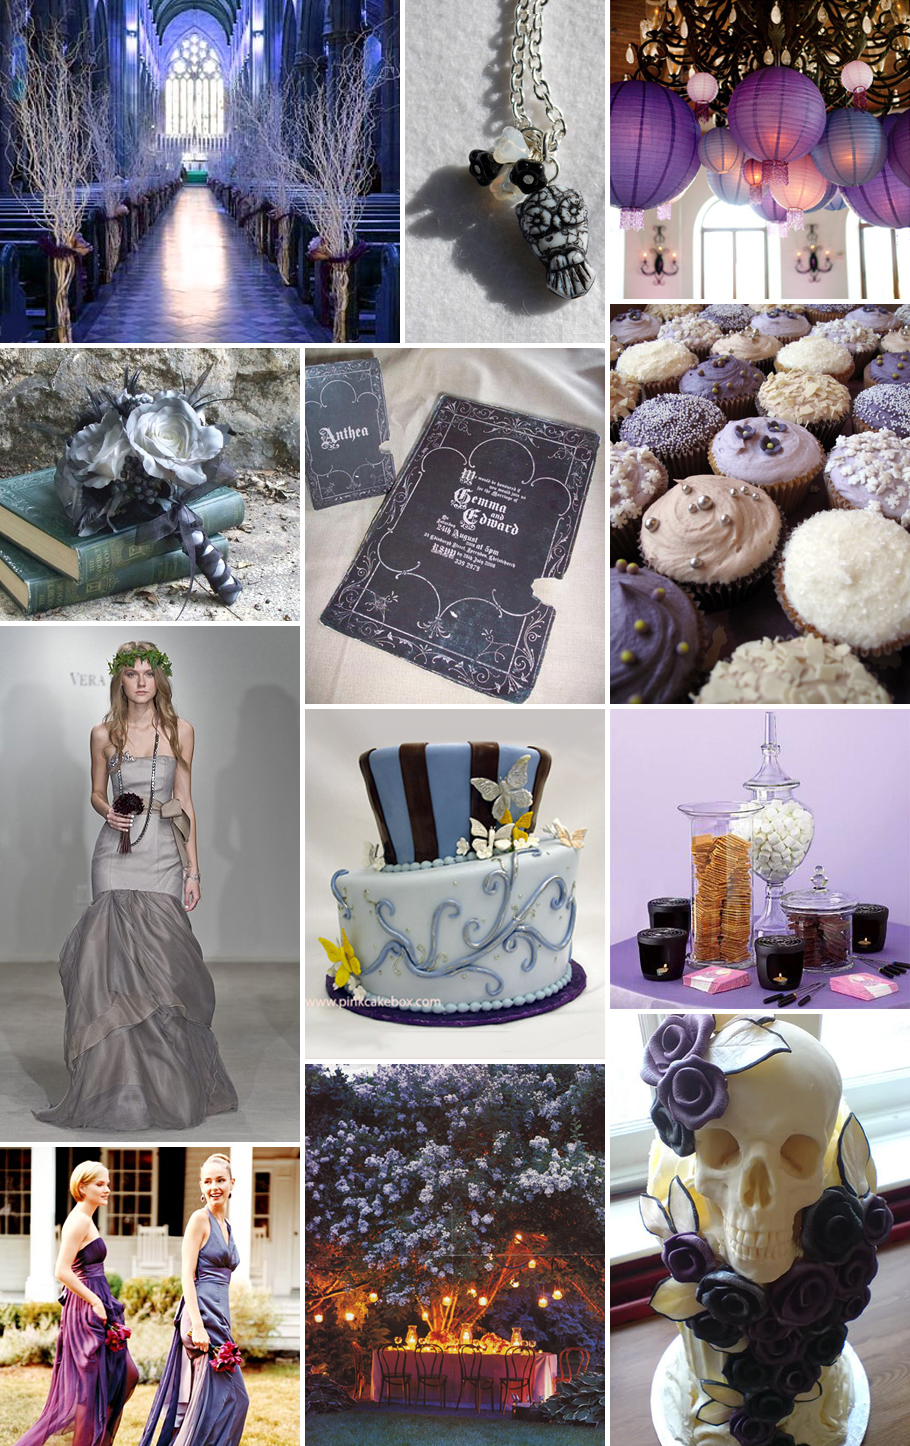 Inspiration A Corpse Bride Halloween Wedding Theme Pixel Ink